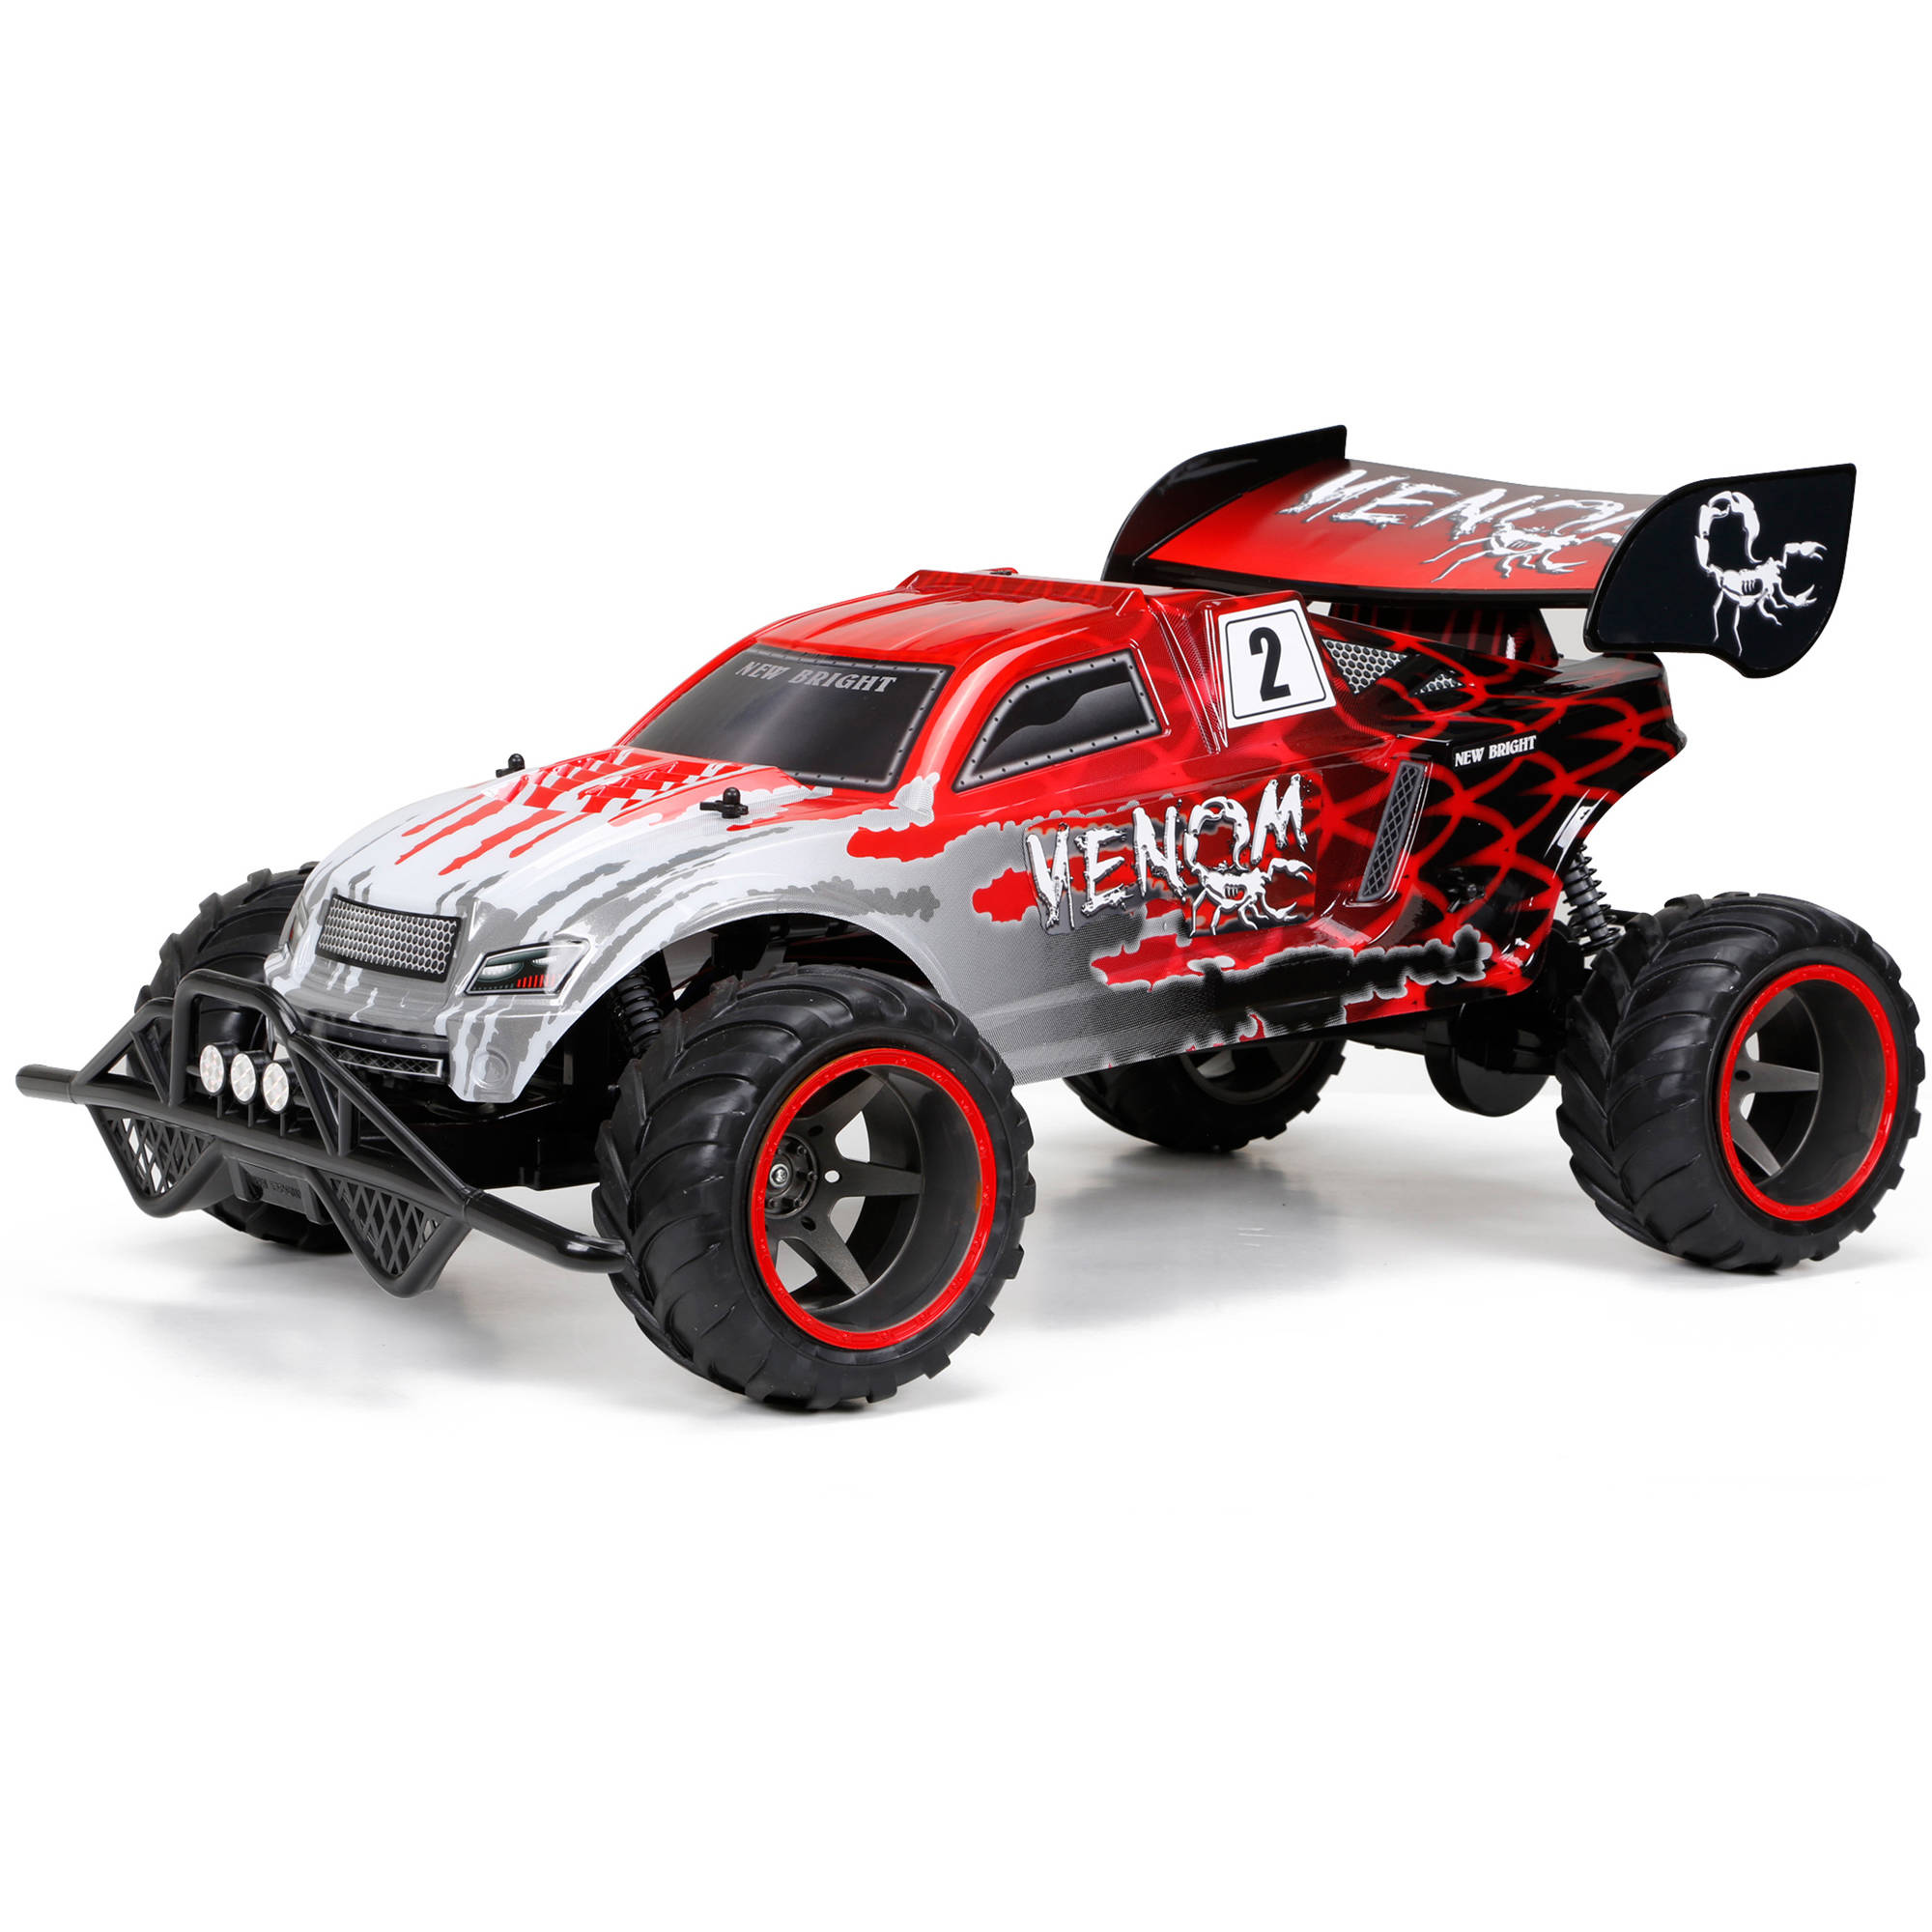 New Bright 1:6 Full-Function 9.6V Venom R/C Car, Red